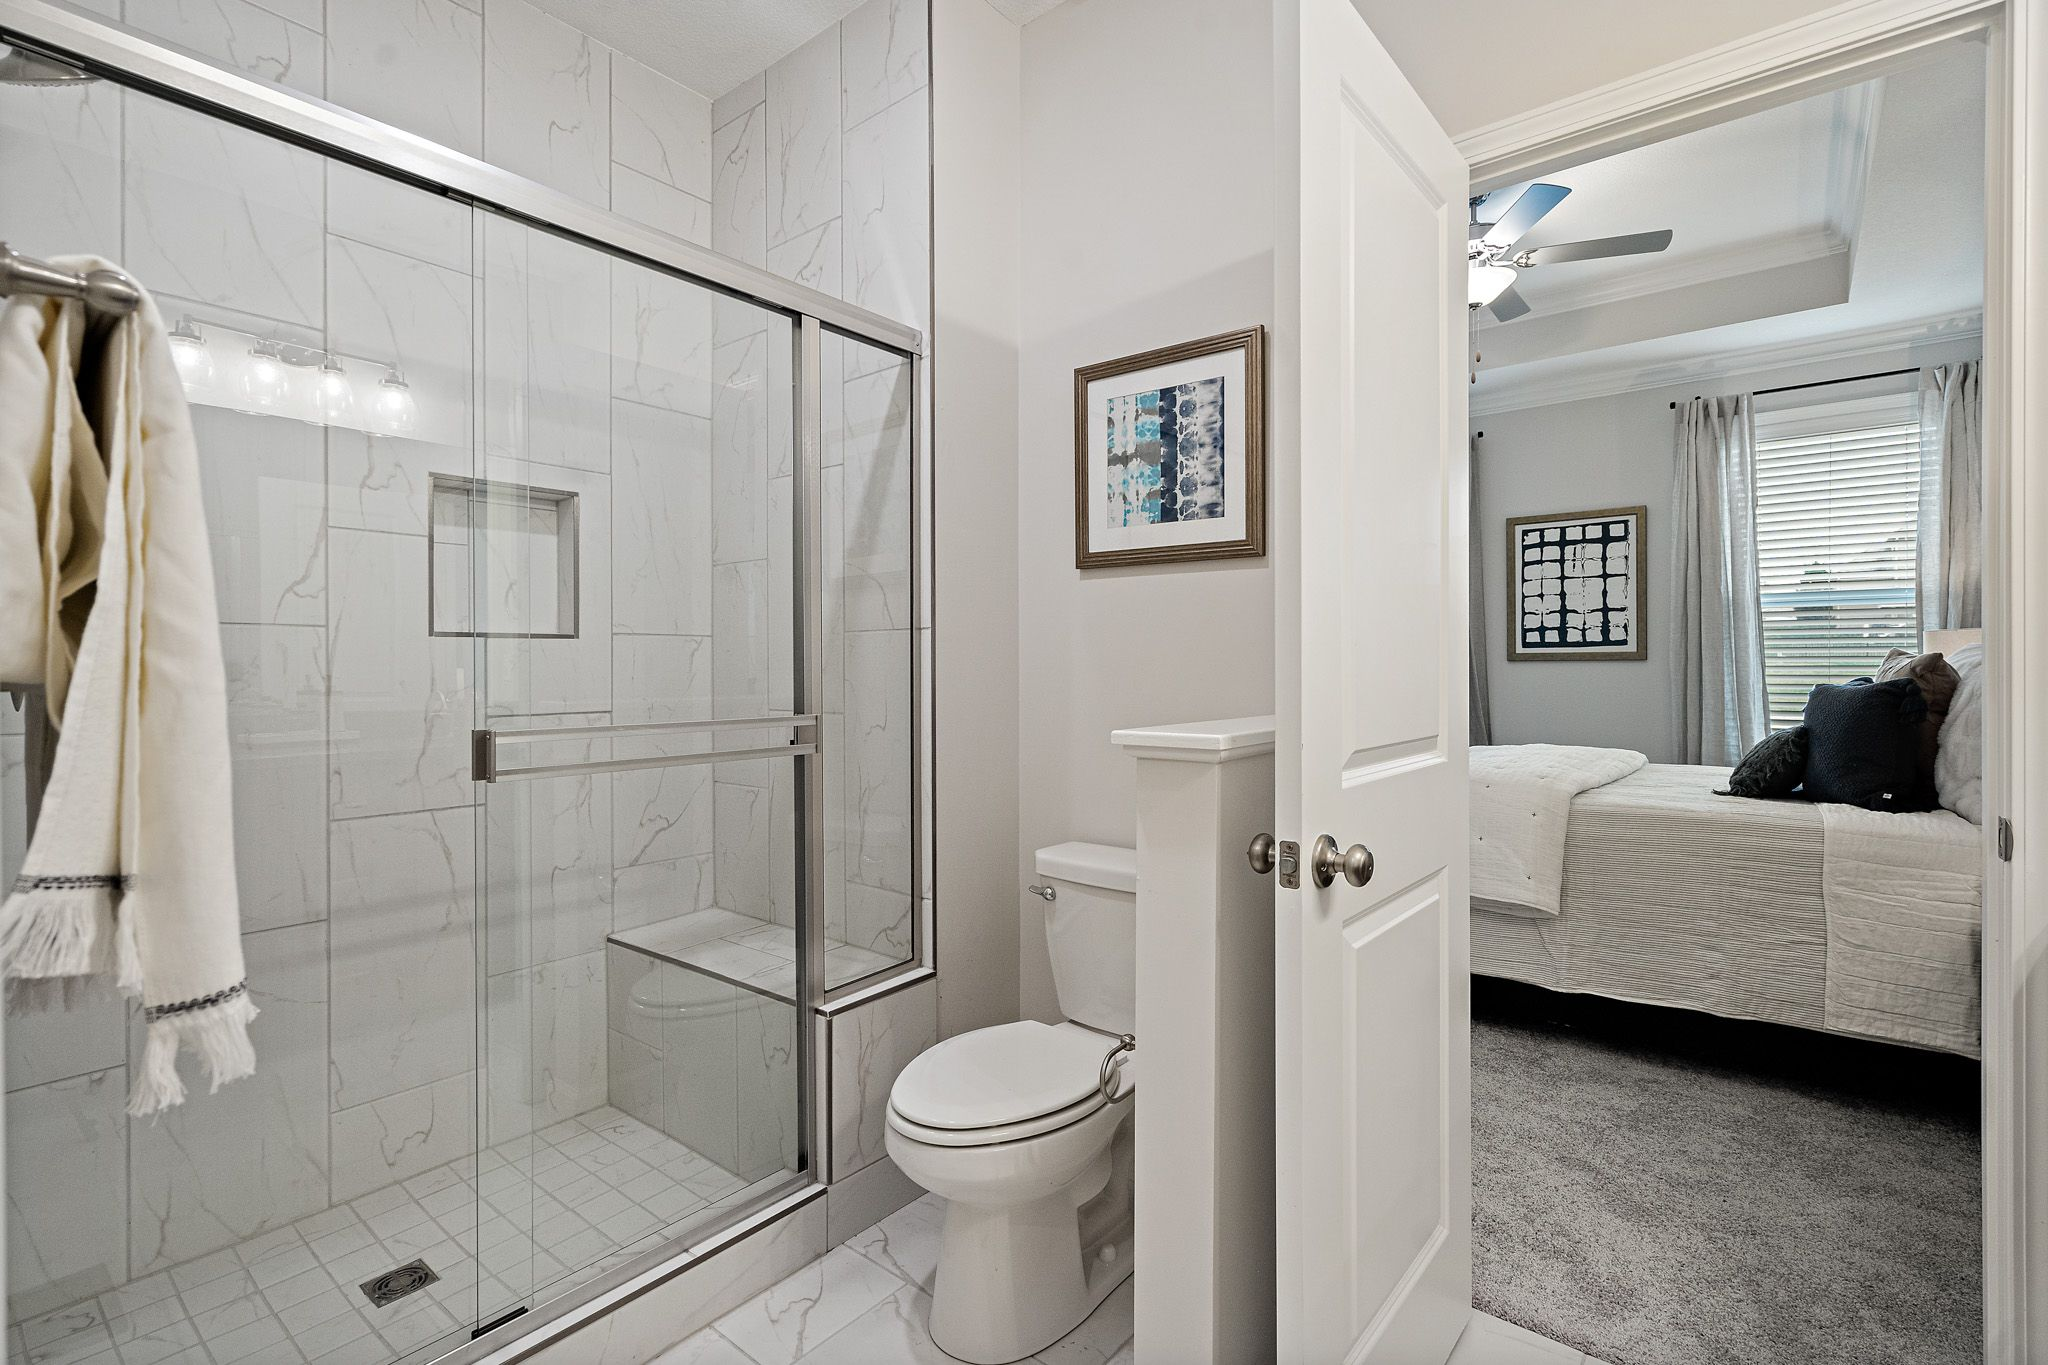 Bathroom featured in the Westport - Care Free By Summit Homes in Kansas City, MO